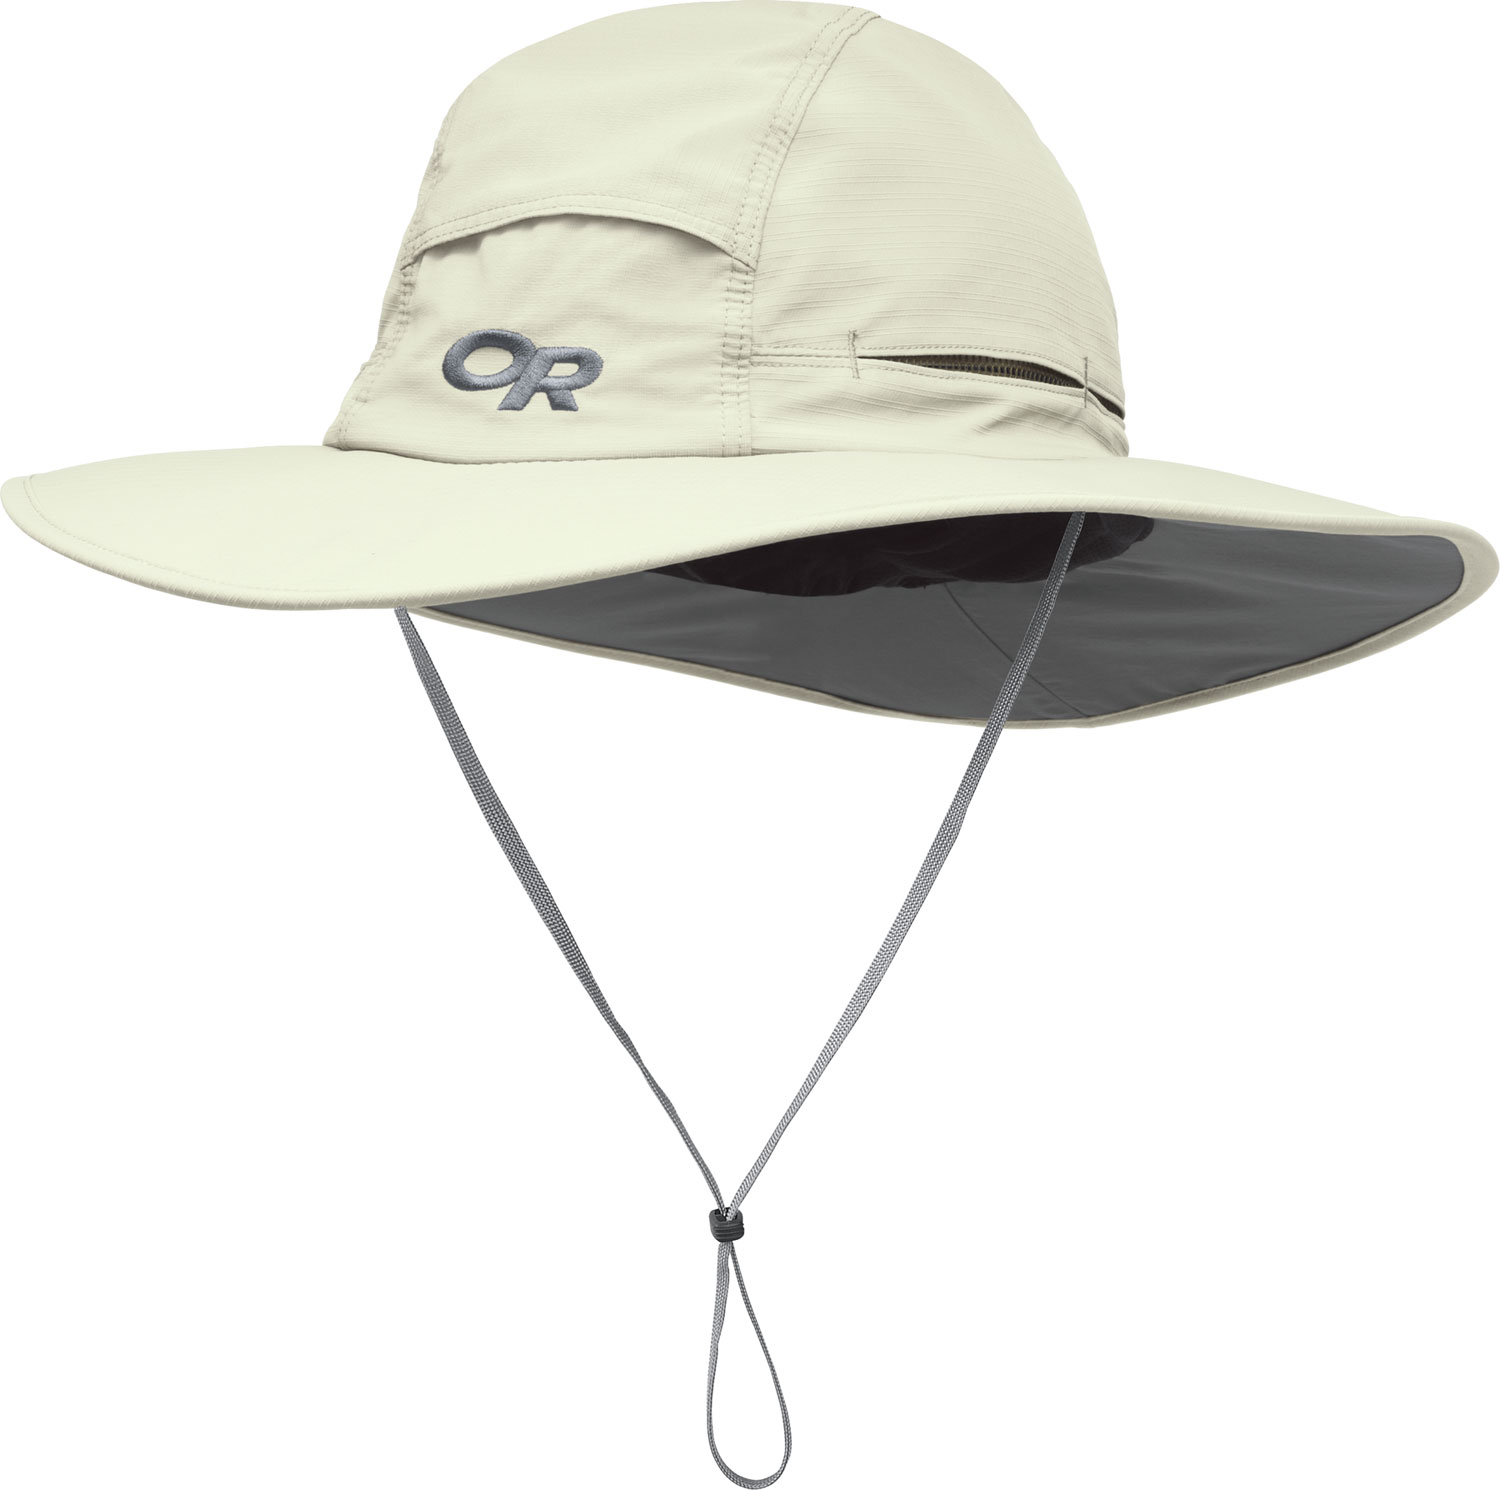 "If you plan to head out into the great outdoors and do some exploring you want to be comfortable. Whether scrambling through brush or striding down trails the Outdoor Research Sombroilet Sun Hat is ready to shade your eyes and help protect you from the elements. The blended material is durable enough and designed to take trekking through the wilderness. Vents in the crown help control your body temperature and the drawcord makes sure you get a comfortable fit.* SolarShielda""  construction * Ripstop nylon/polyester blend; UPF 50+ * Foam-stiffened brim floats * Flexible, circumferential piping along brim for wind resistance * Mesh-lined crown and TransActiona""  headband * Vents in crown for ventilation * External drawcord adjustment * Removable chin cord with cordlock * Brim: 2A 3/4a / 7cm * Avg Weight: (L) 3.1 oz. / 88 g - $24.95"